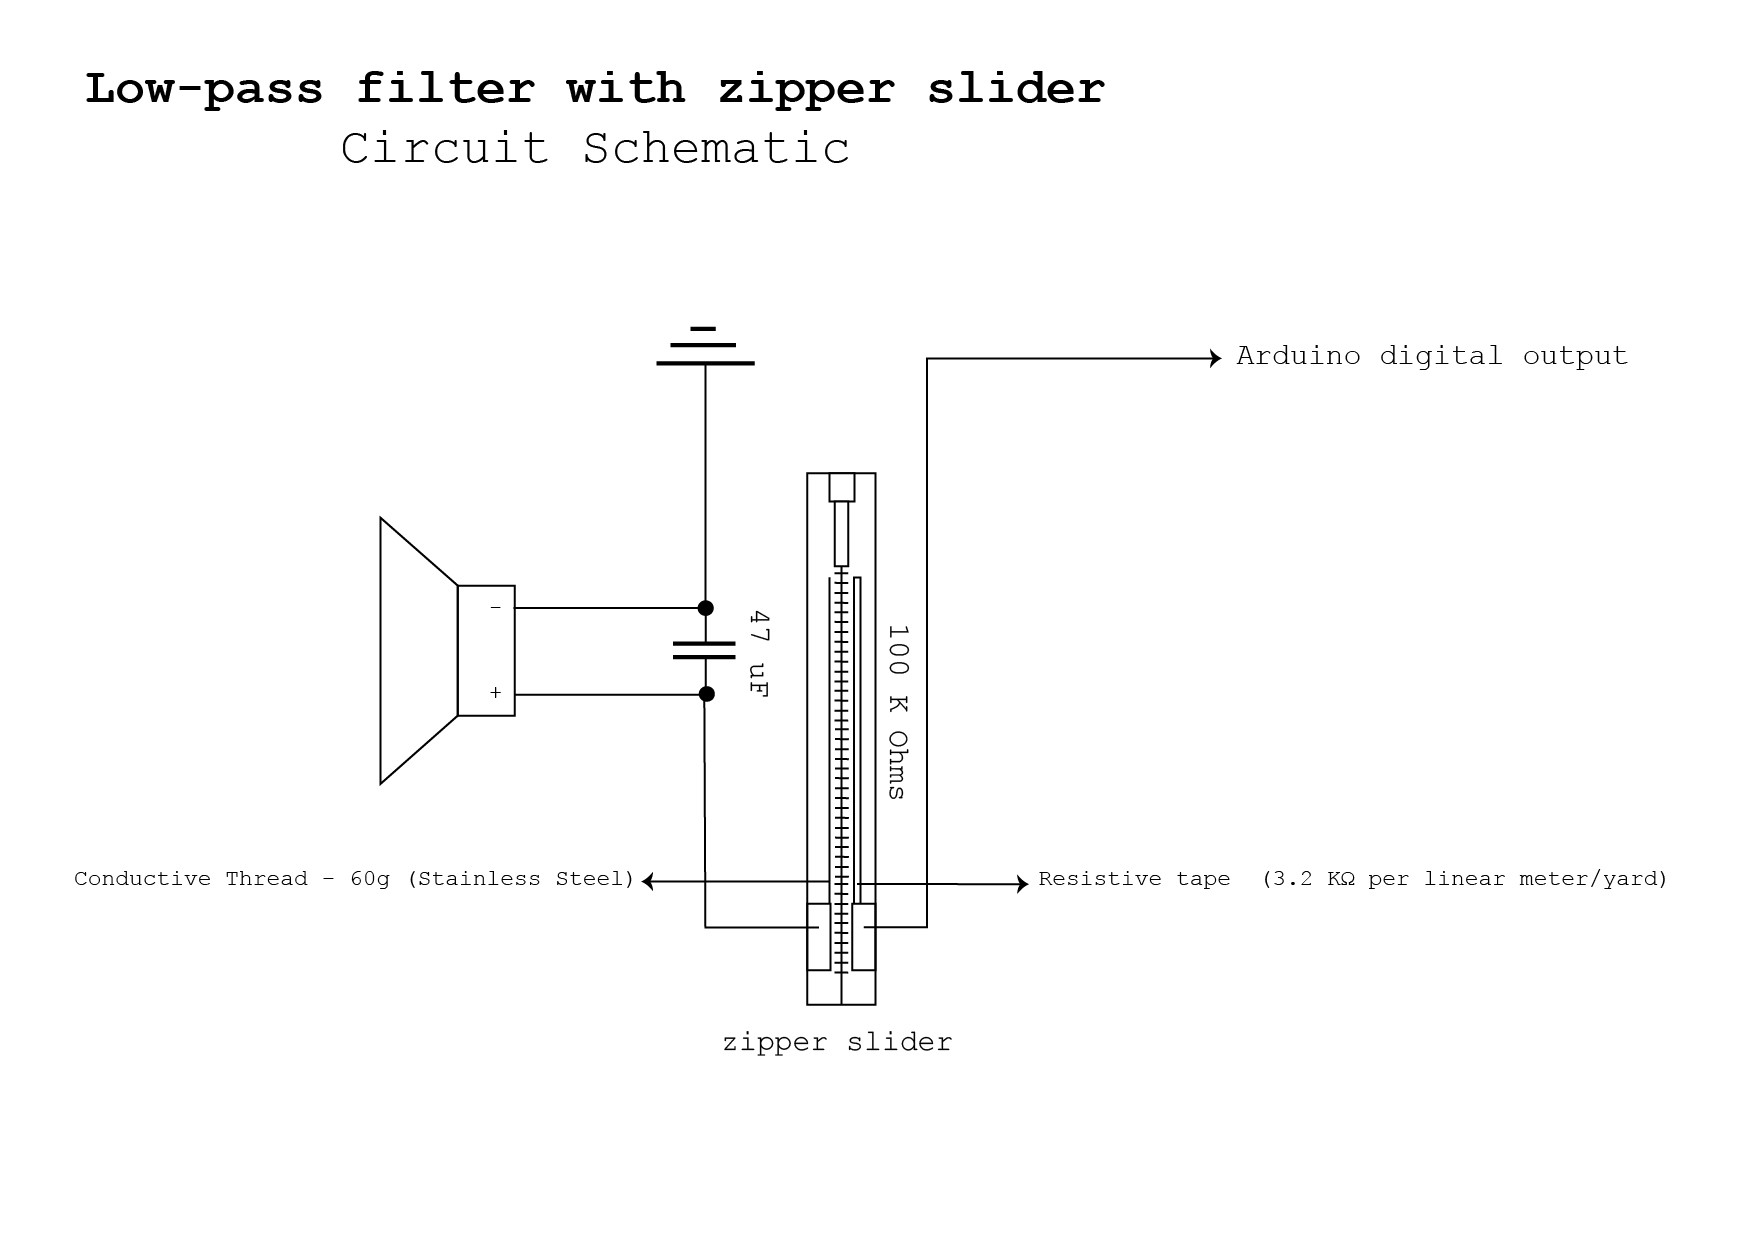 hight resolution of 1754x1240 low pass filter with zipper slider details hackaday io open zipper drawing